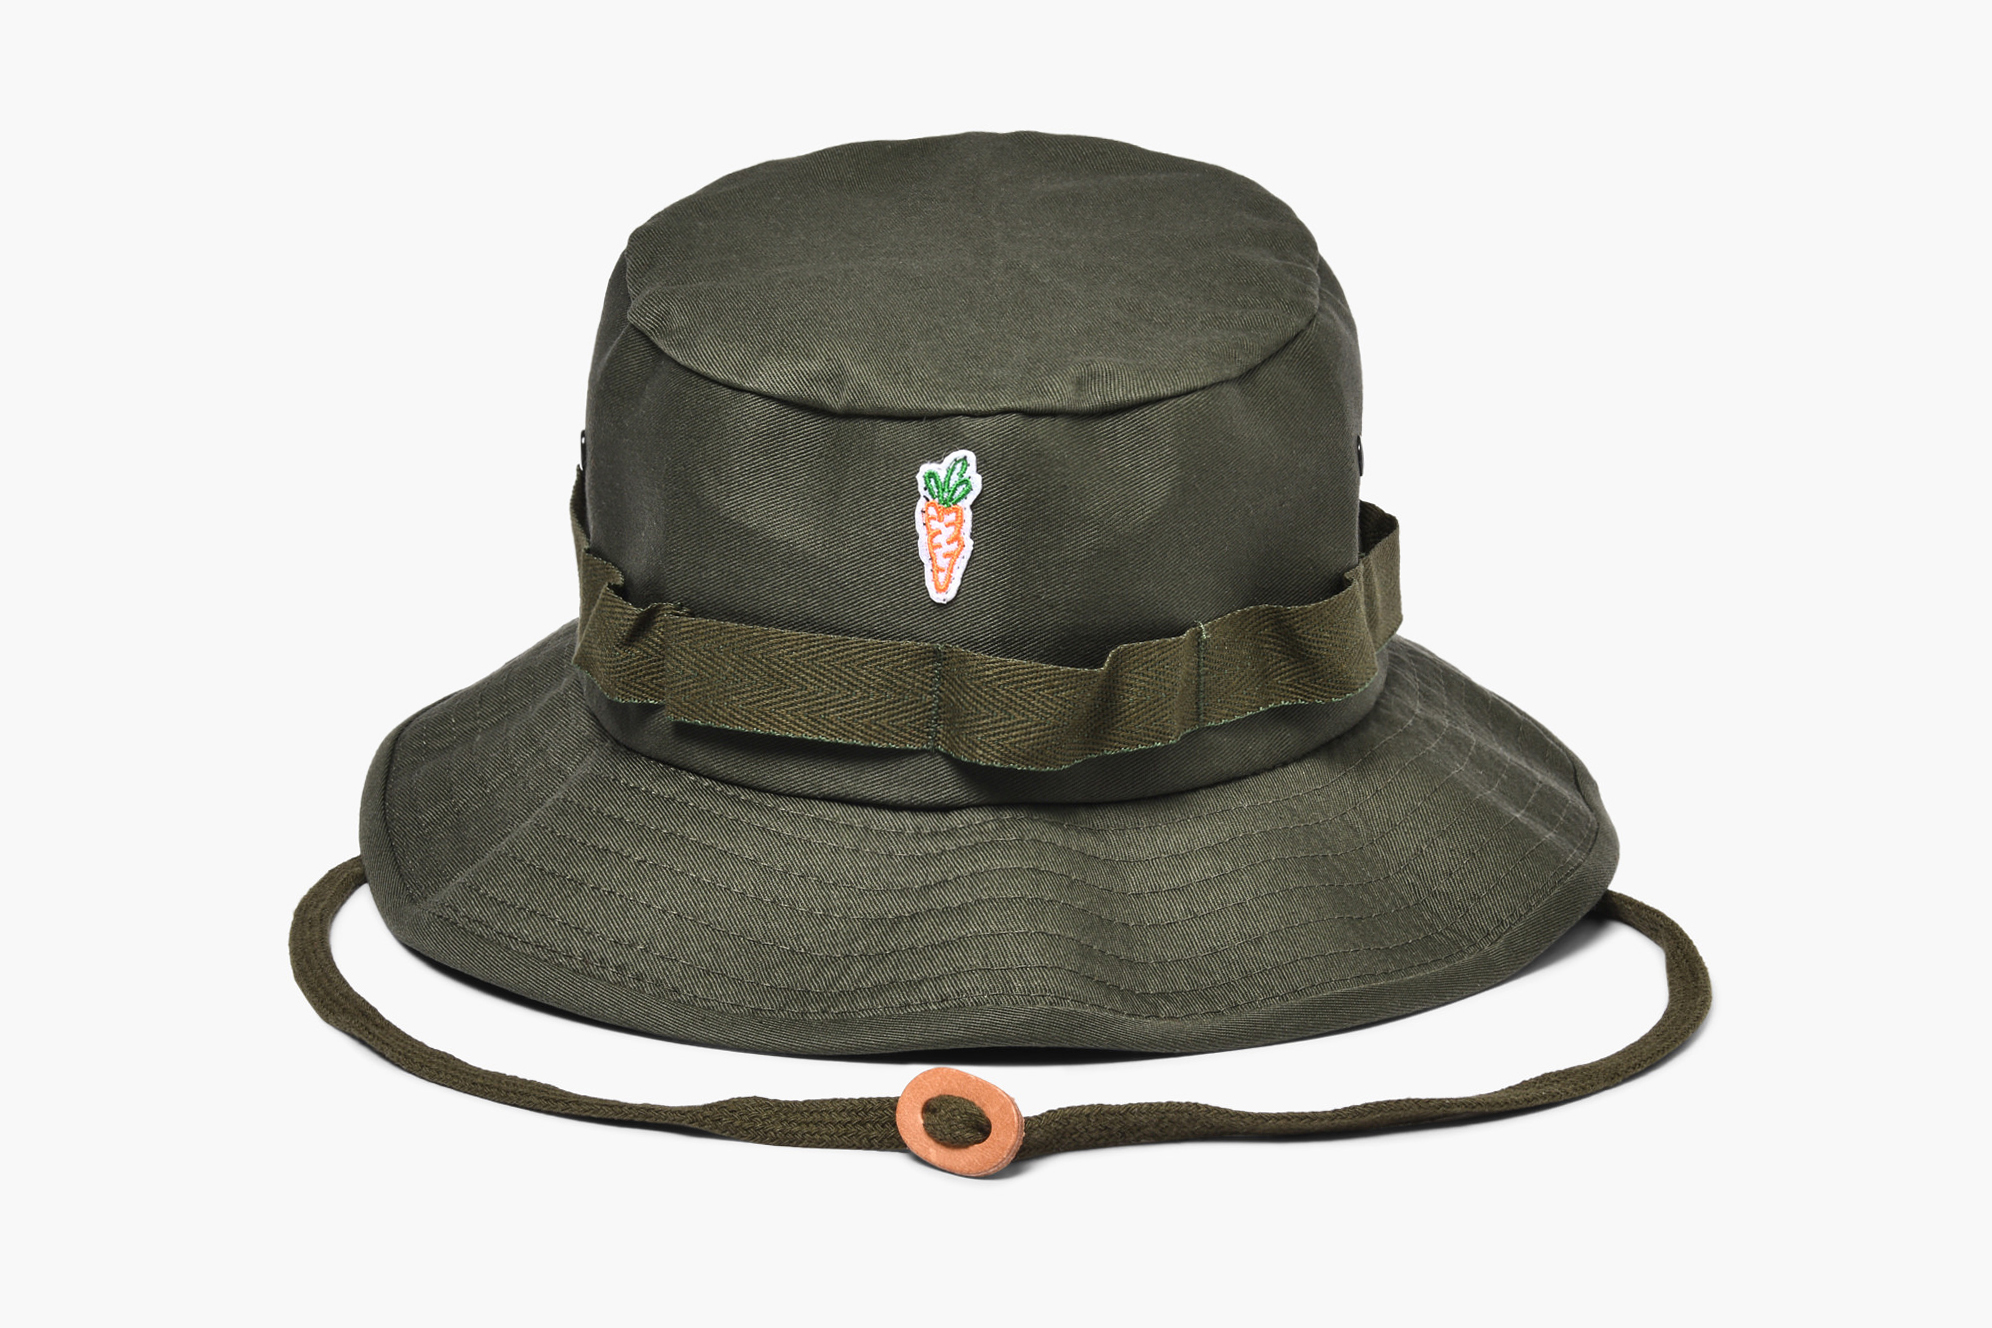 a001408e123 10 of the Dopest Bucket Hats for Under  50